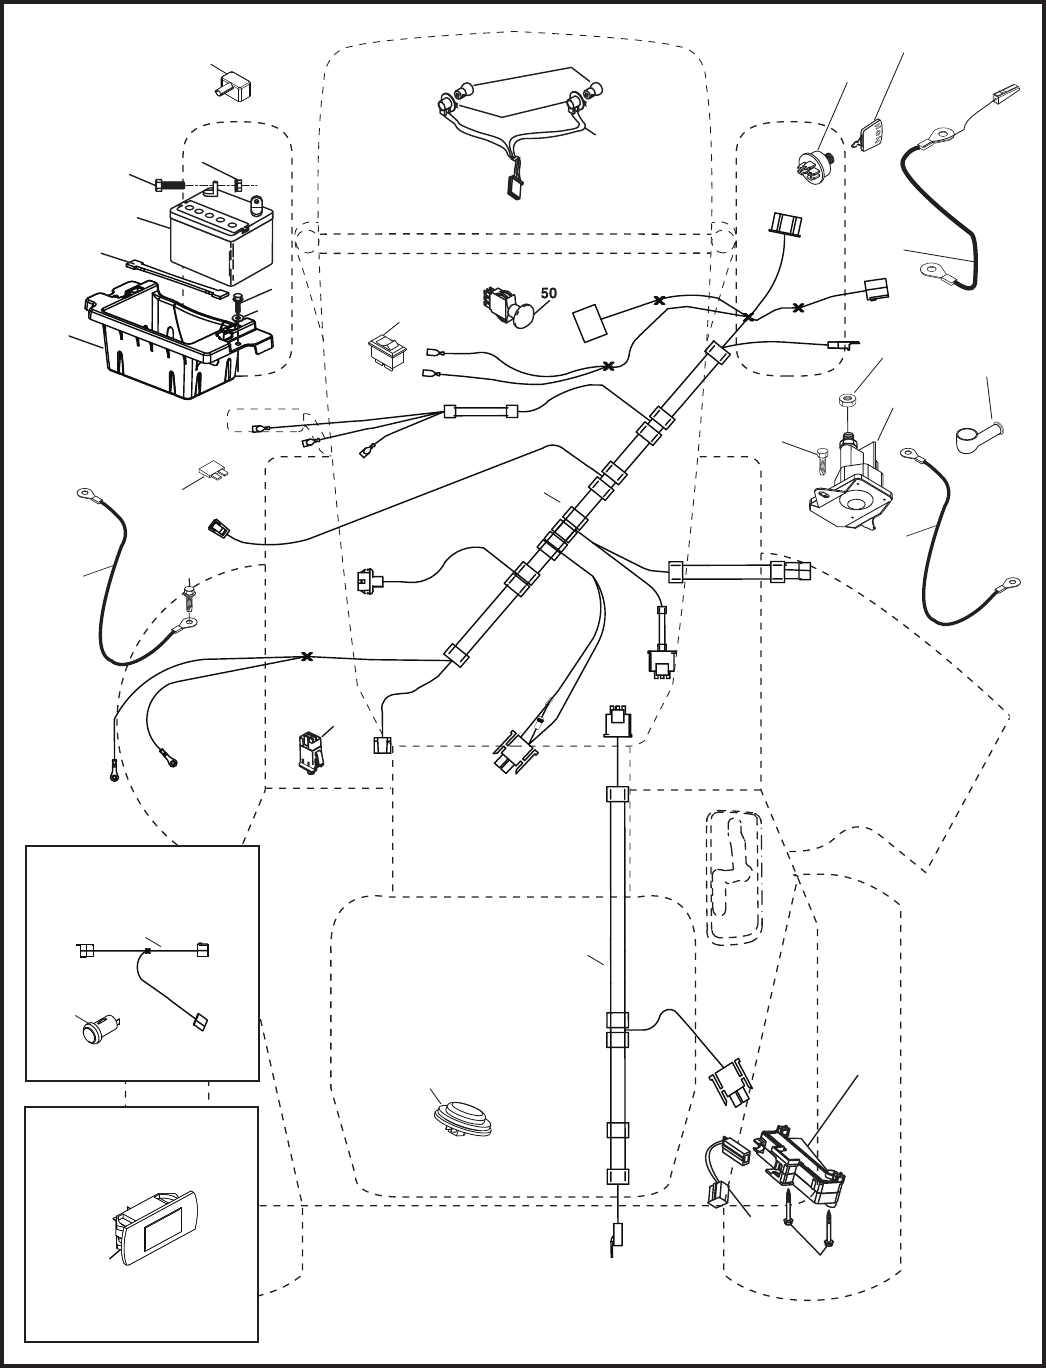 Page 31 of Husqvarna Lawn Mower 03002 User Guide